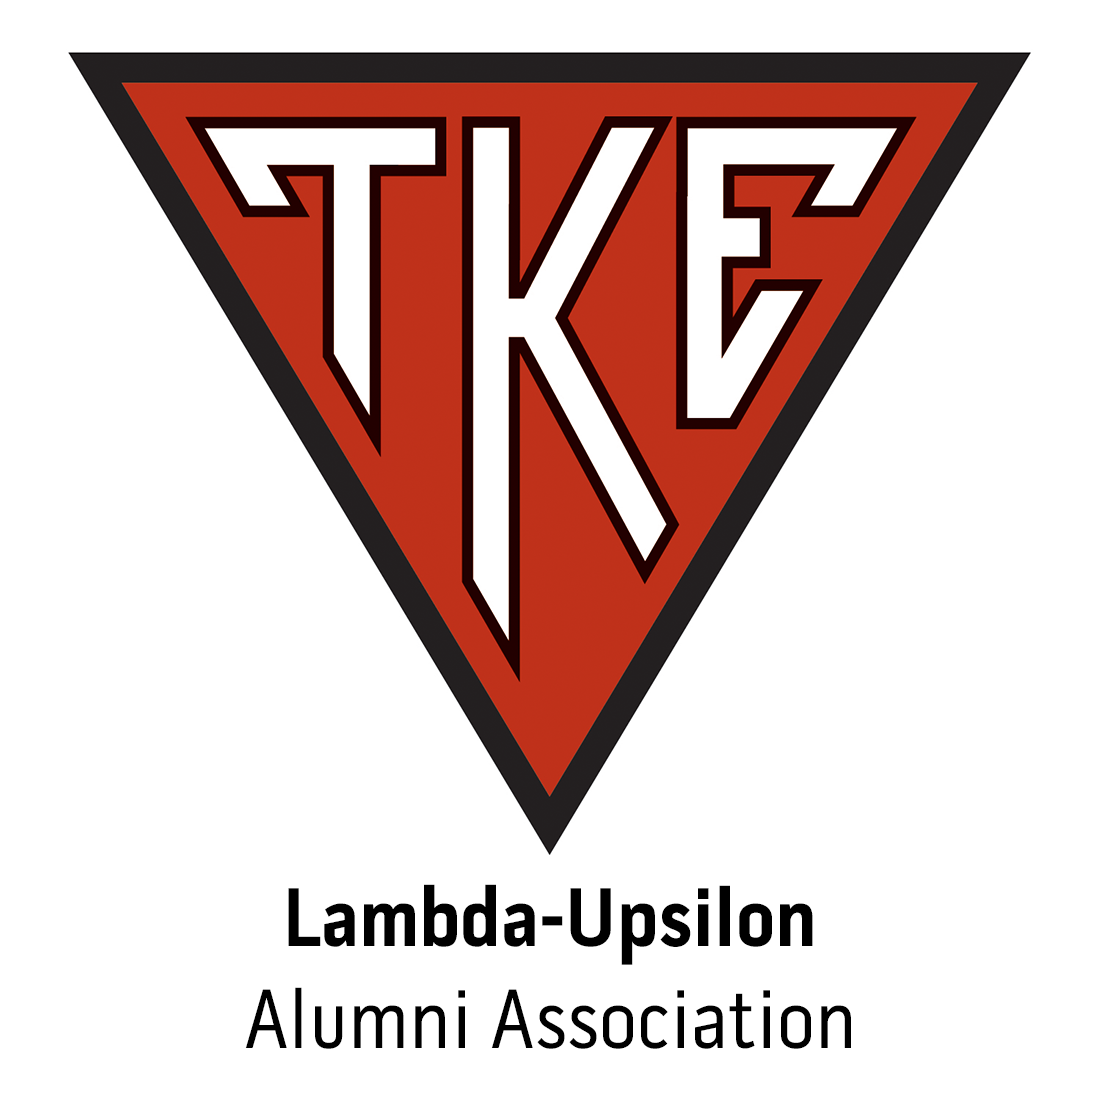 Lambda-Upsilon Alumni Association at Georgia Southern University